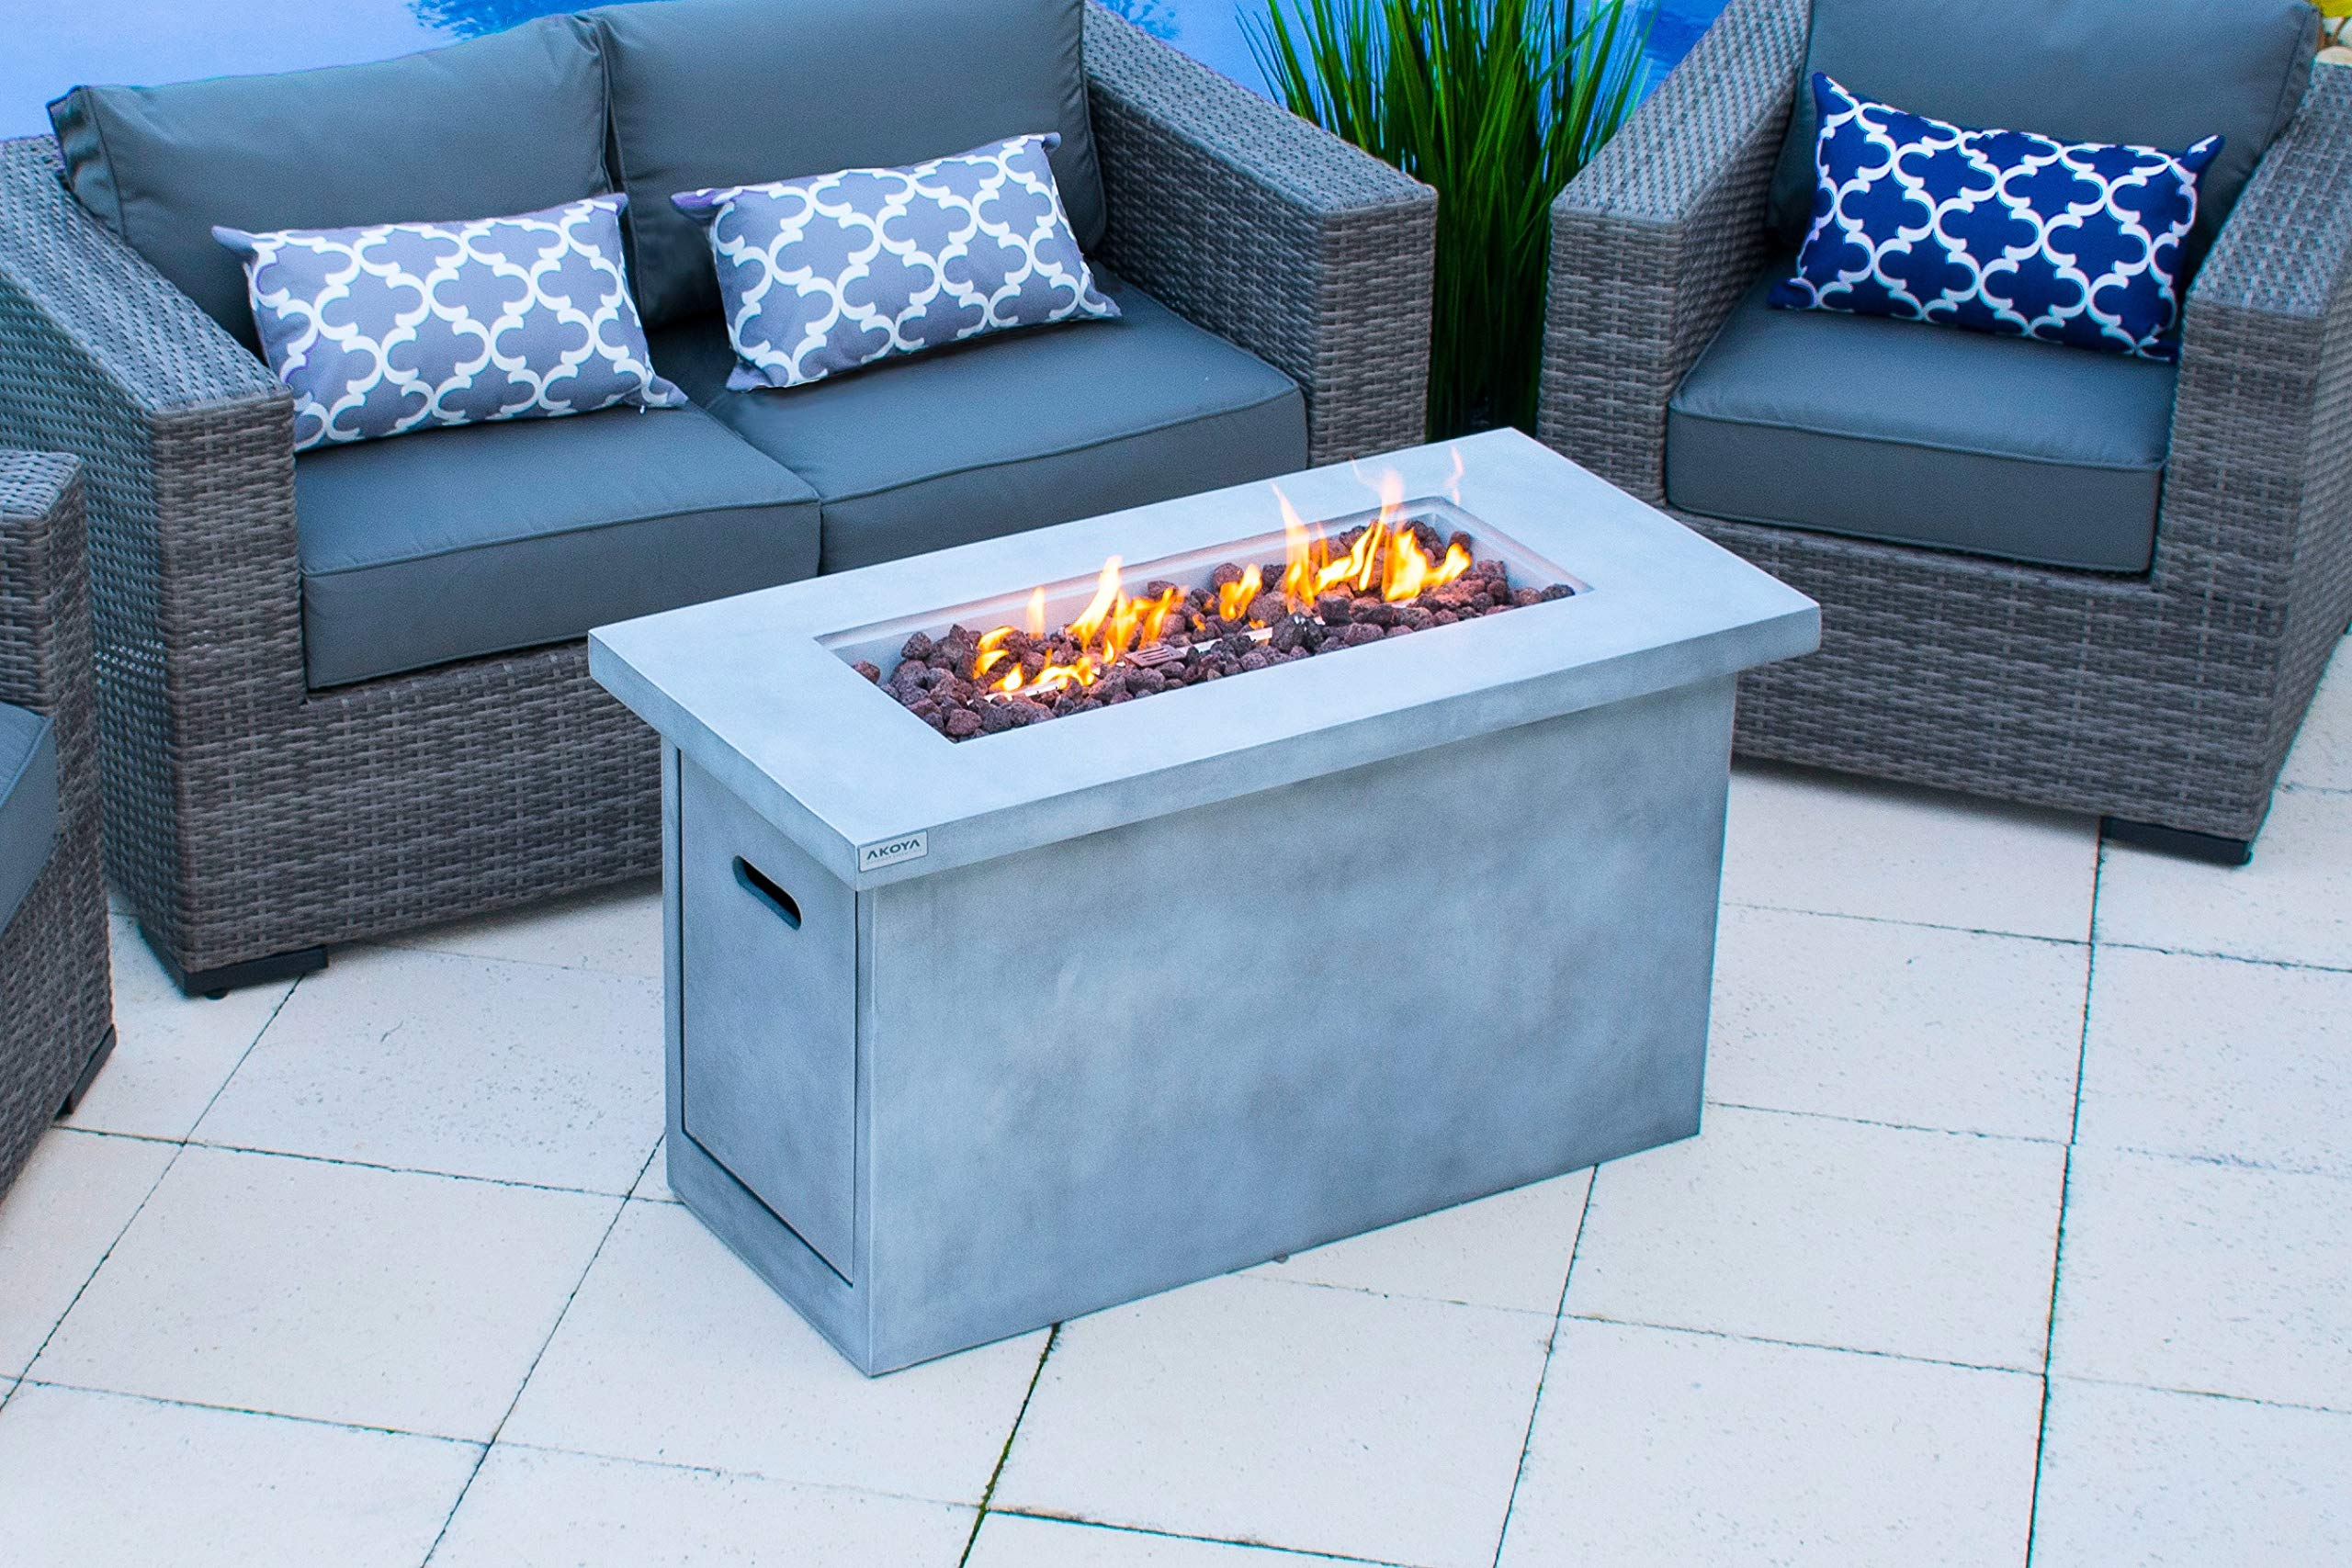 AKOYA Outdoor Essentials 42'' Concrete Outdoor Propane Gas Fire Pit Table in Gray by AKOYA Outdoor Essentials